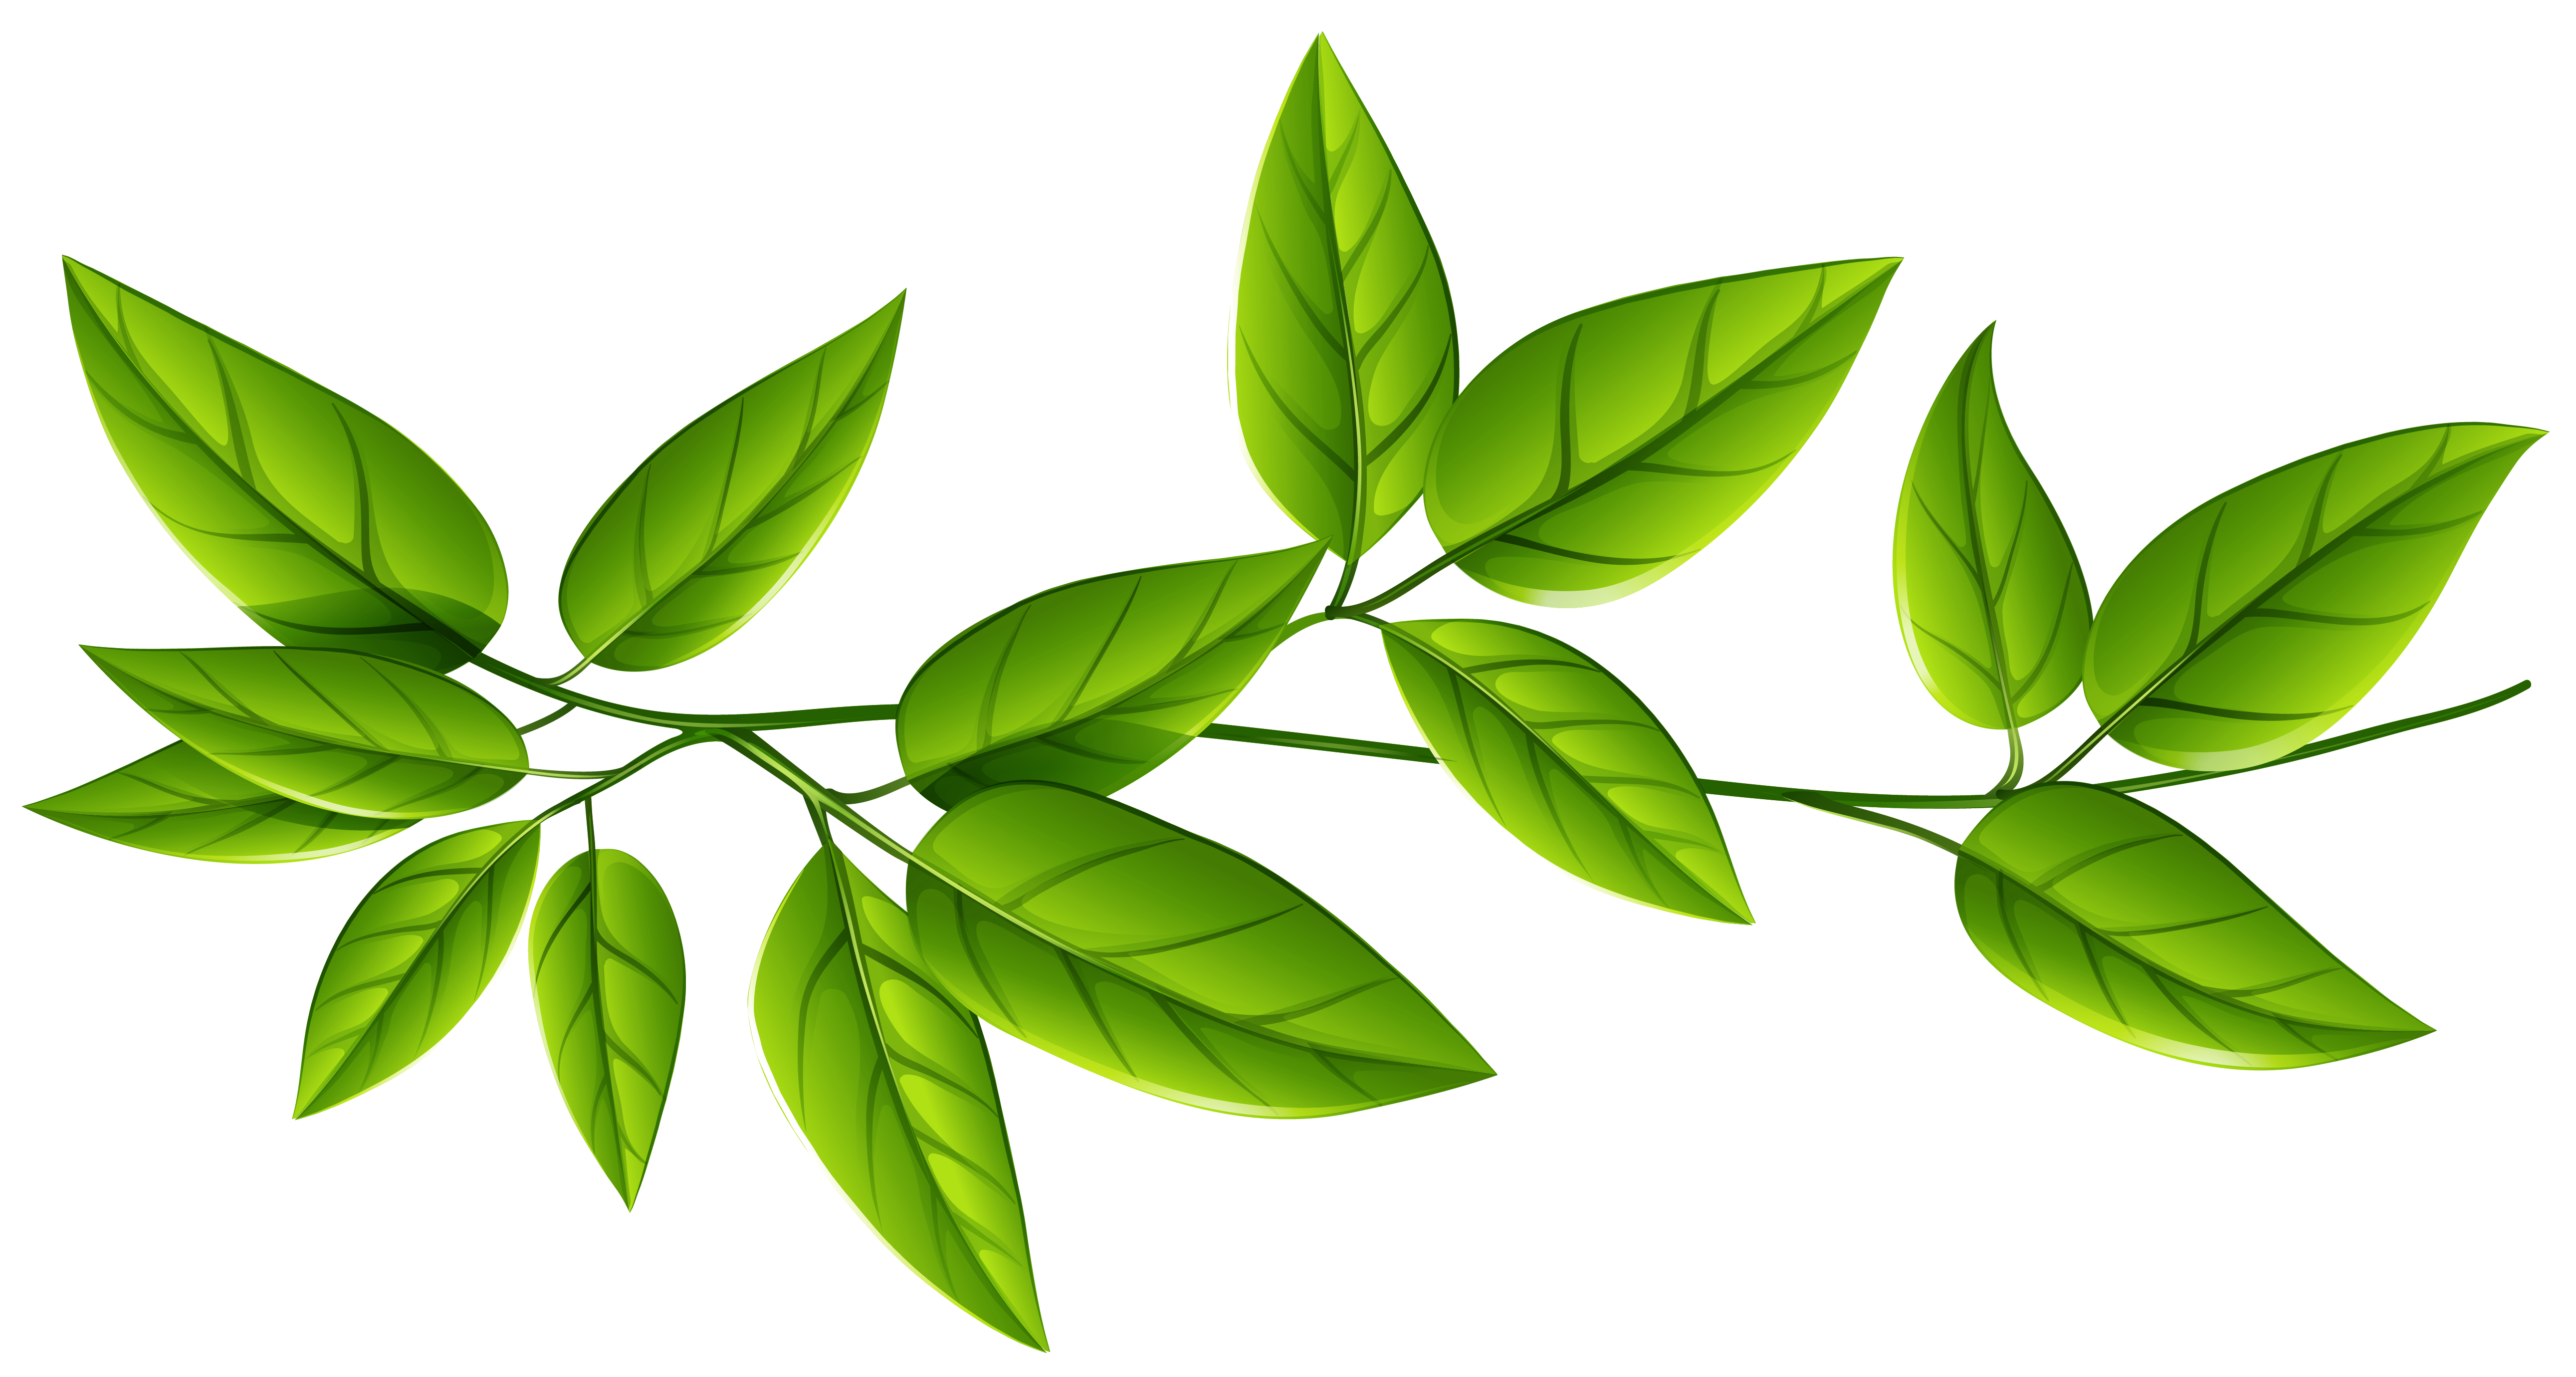 Green leaves image gallery. Leaf png banner stock